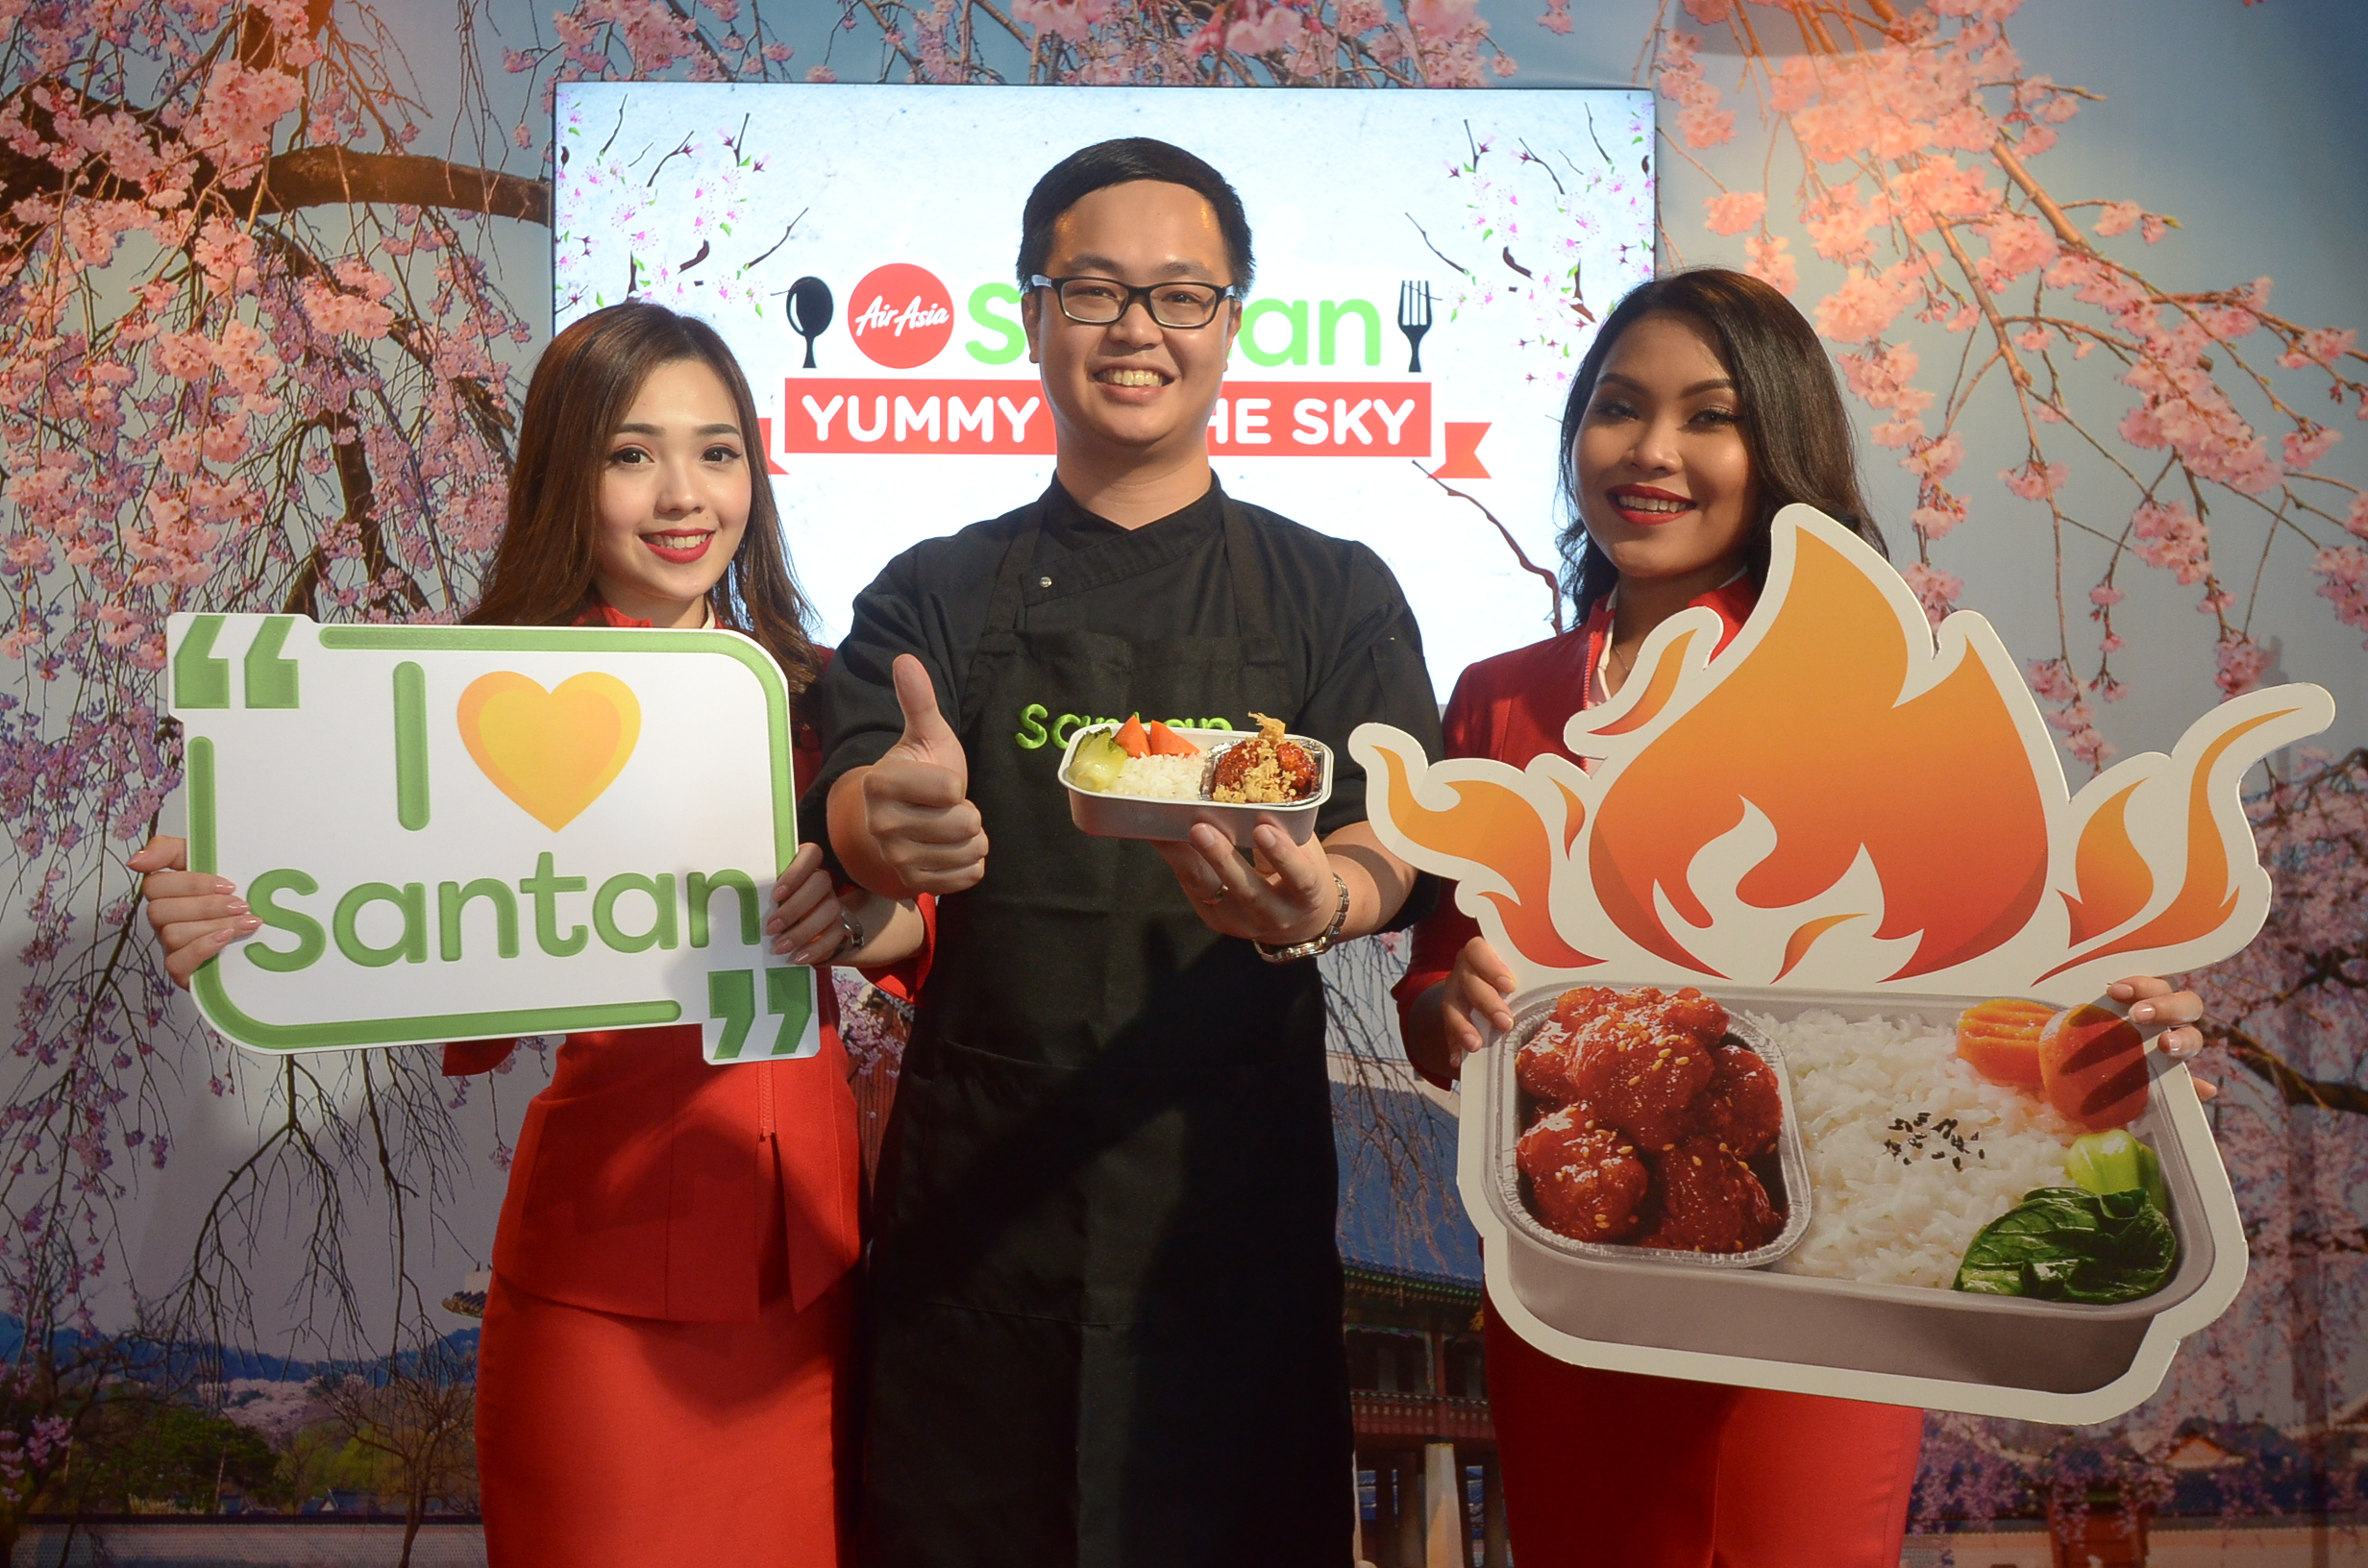 AirAsia Resident Chef, Chef Calvin Soo introducing the new Santan Celebrity Chef Series Meal - Chef Hong's Korean Sweet & Spicy Chicken flanked by AirAsia cabin crews.